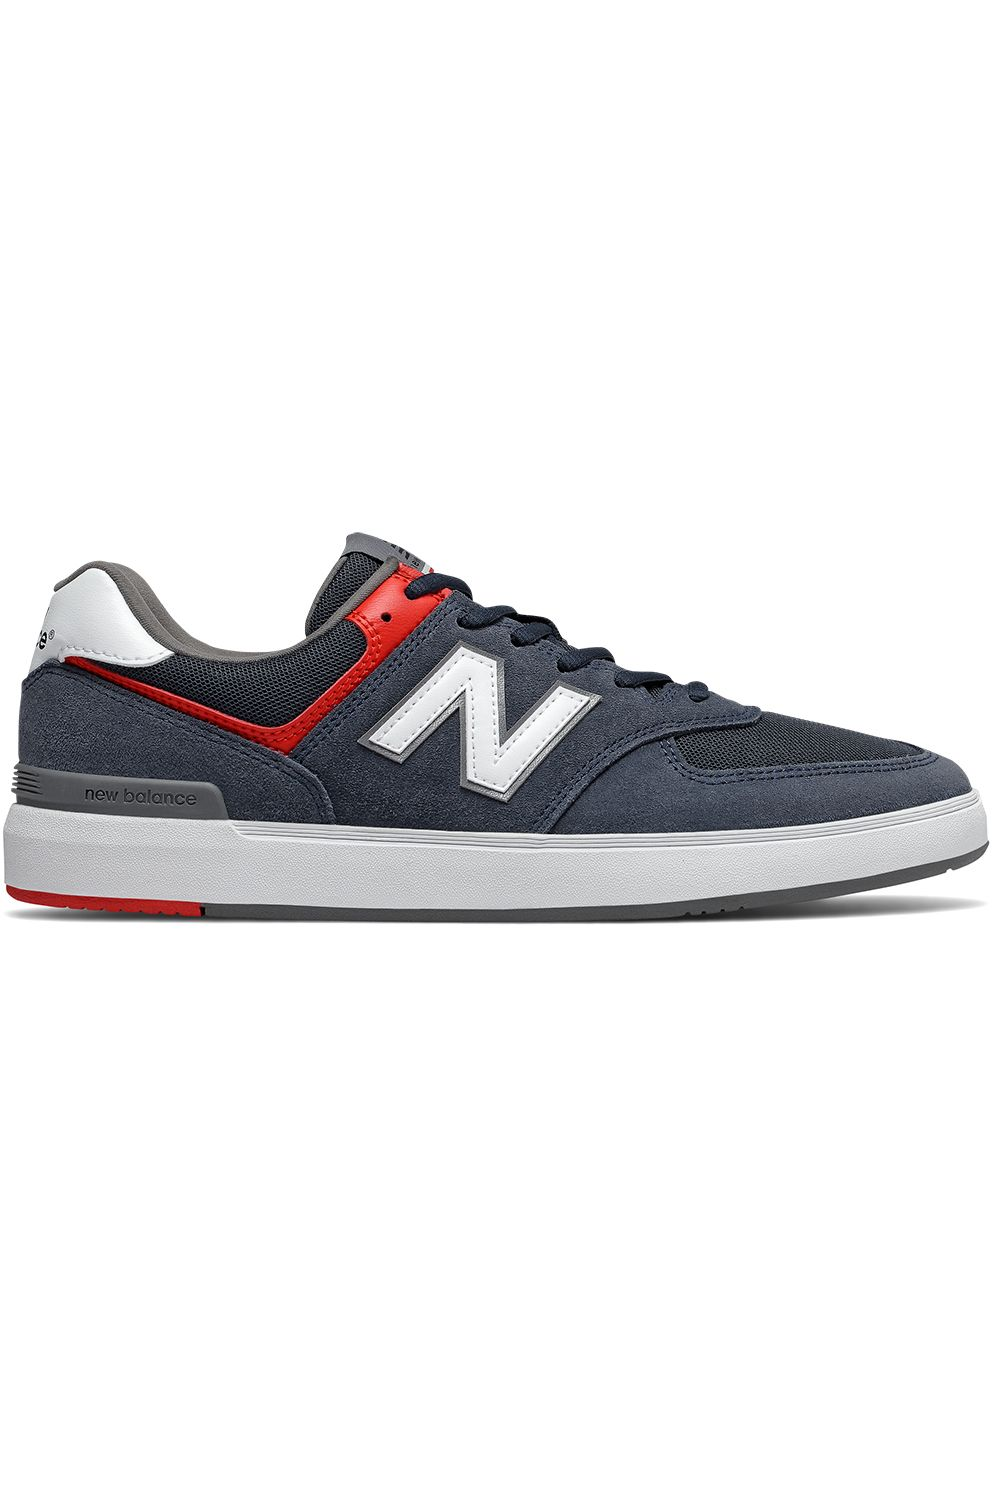 New Balance Shoes AM574 Navy/Red